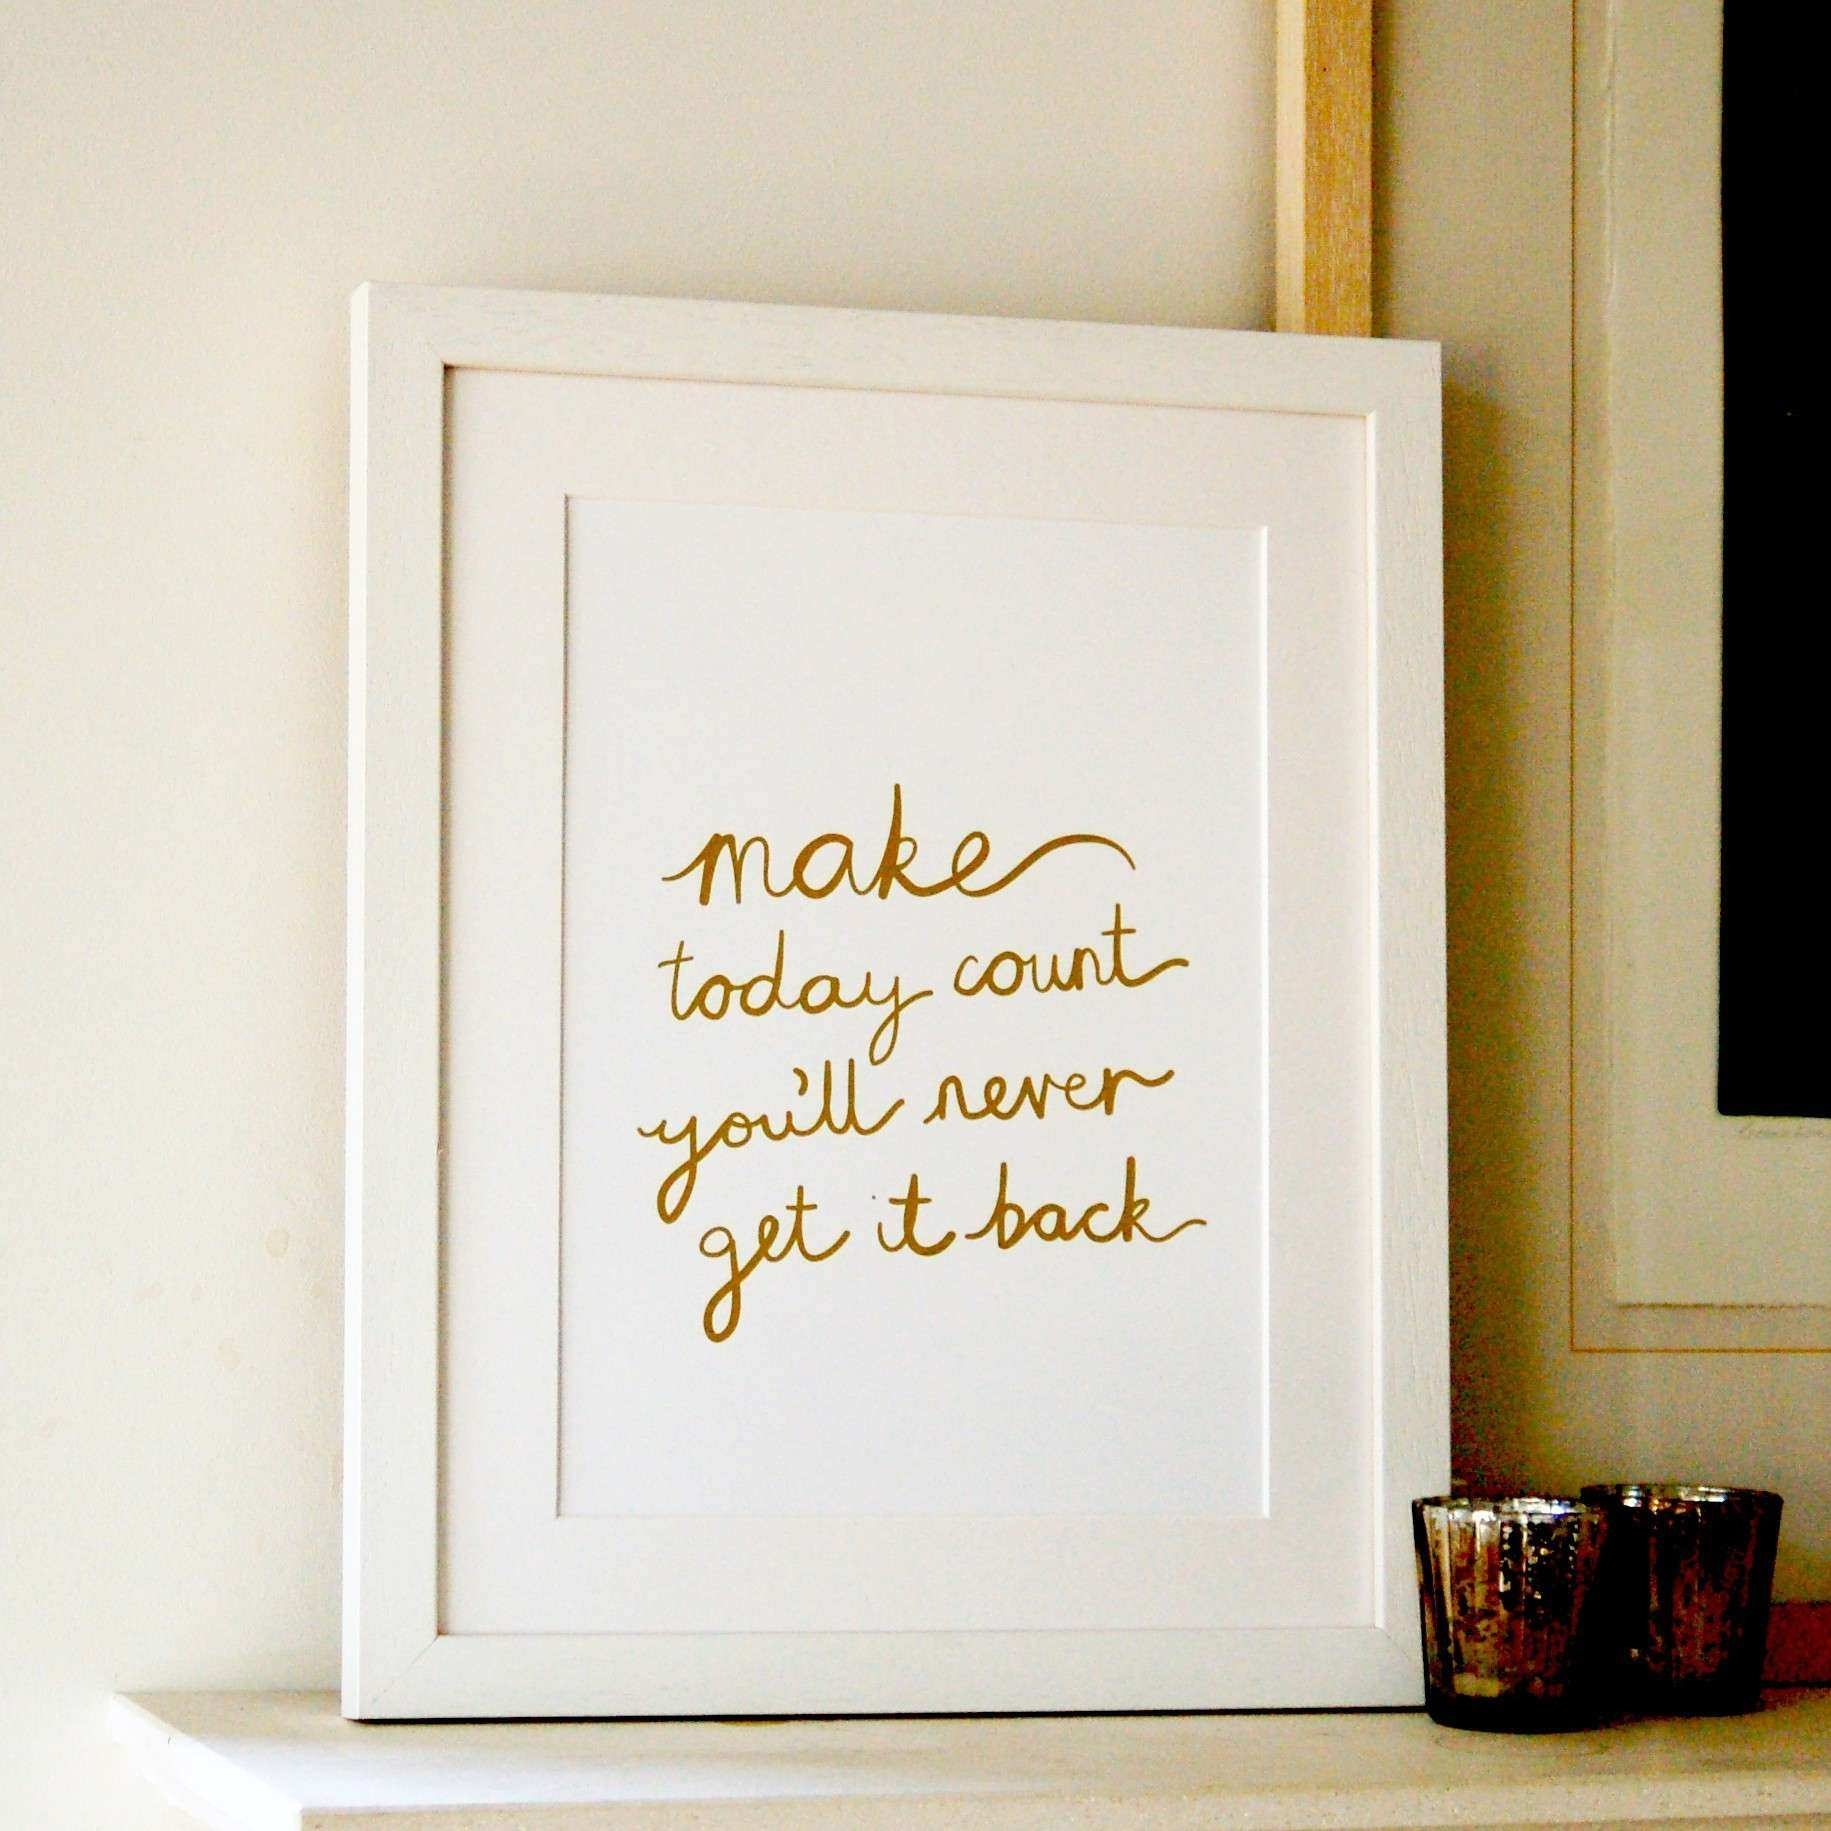 Gold And White Wall Decor New Gold Foil Wall Art | Wall Art Ideas Regarding Most Current Gold Foil Wall Art (View 1 of 20)